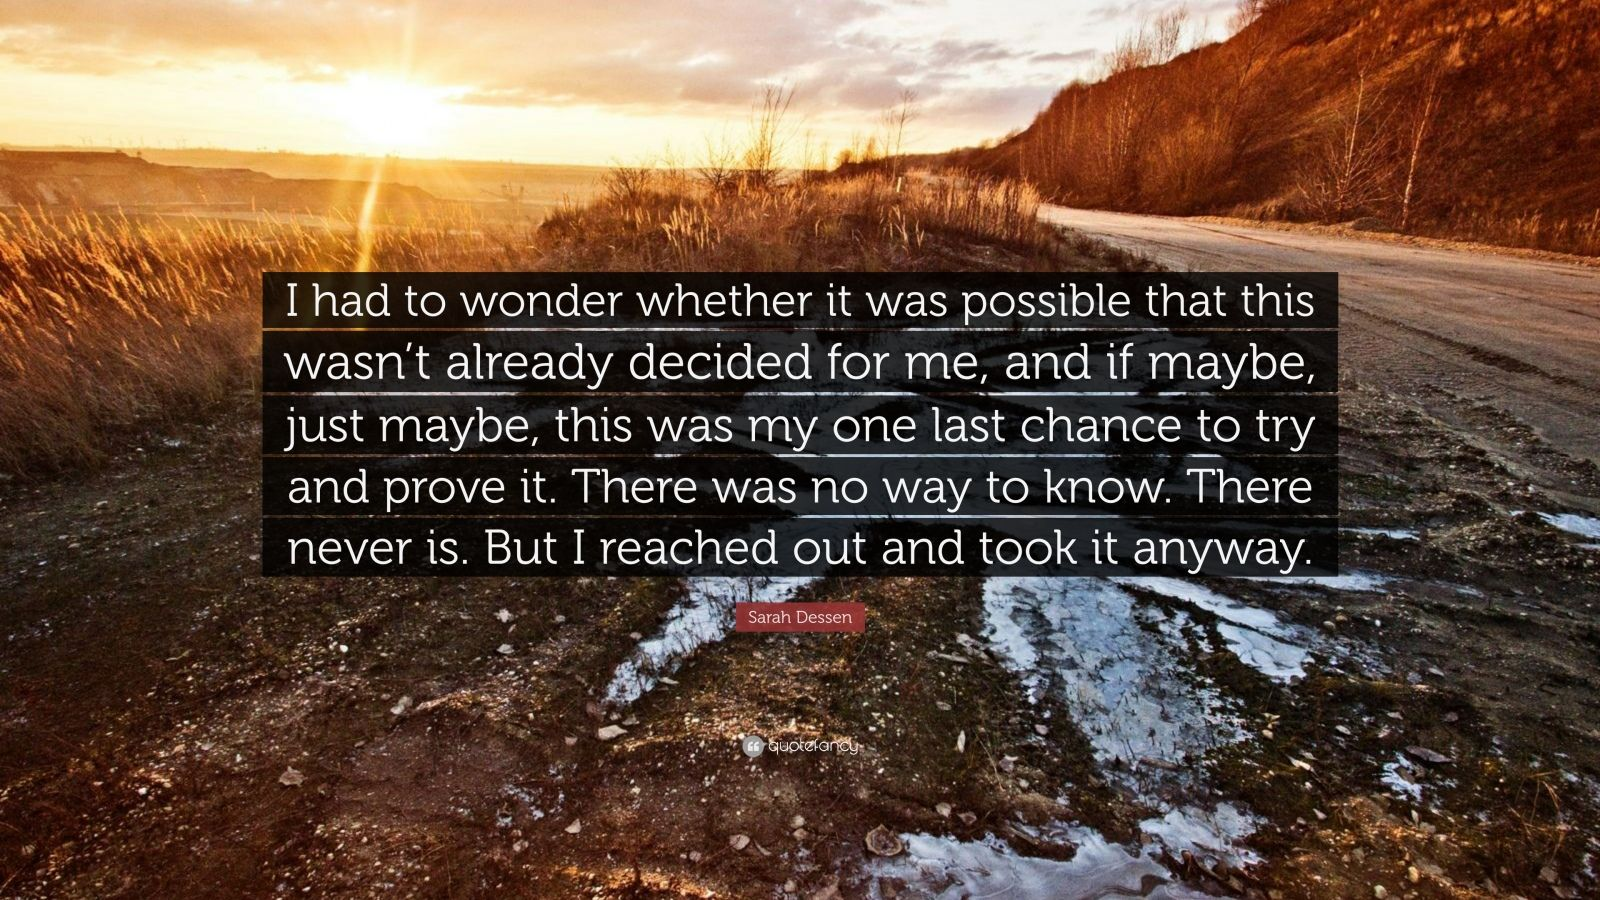 "Sarah Dessen Quote: ""I had to wonder whether it was possible that this wasn't already decided for me, and if maybe, just maybe, this was my one last chance to try and prove it. There was no way to know. There never is. But I reached out and took it anyway."""